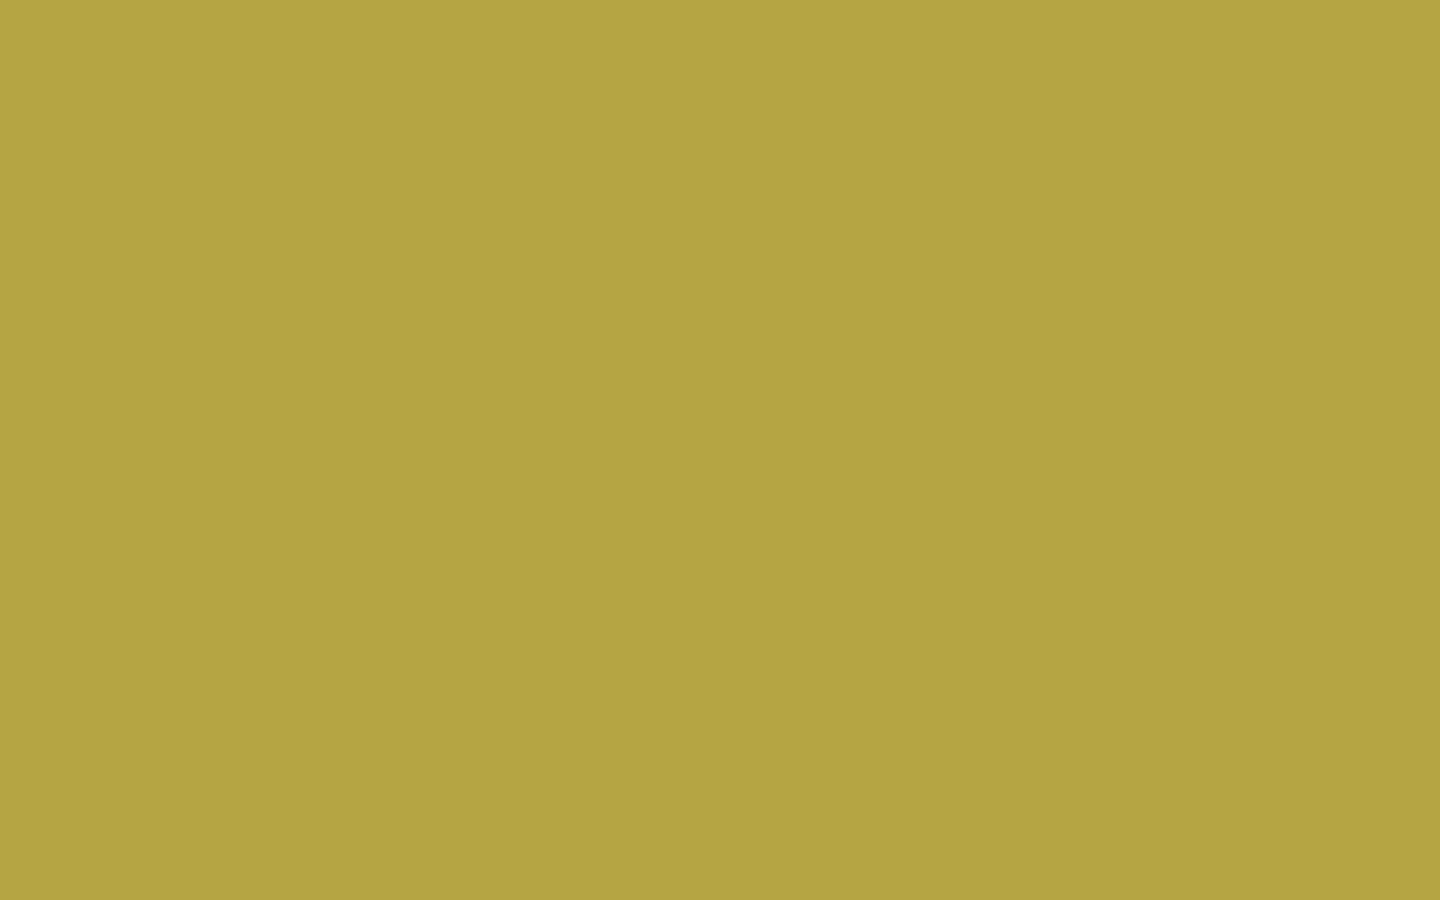 1440x900 Brass Solid Color Background